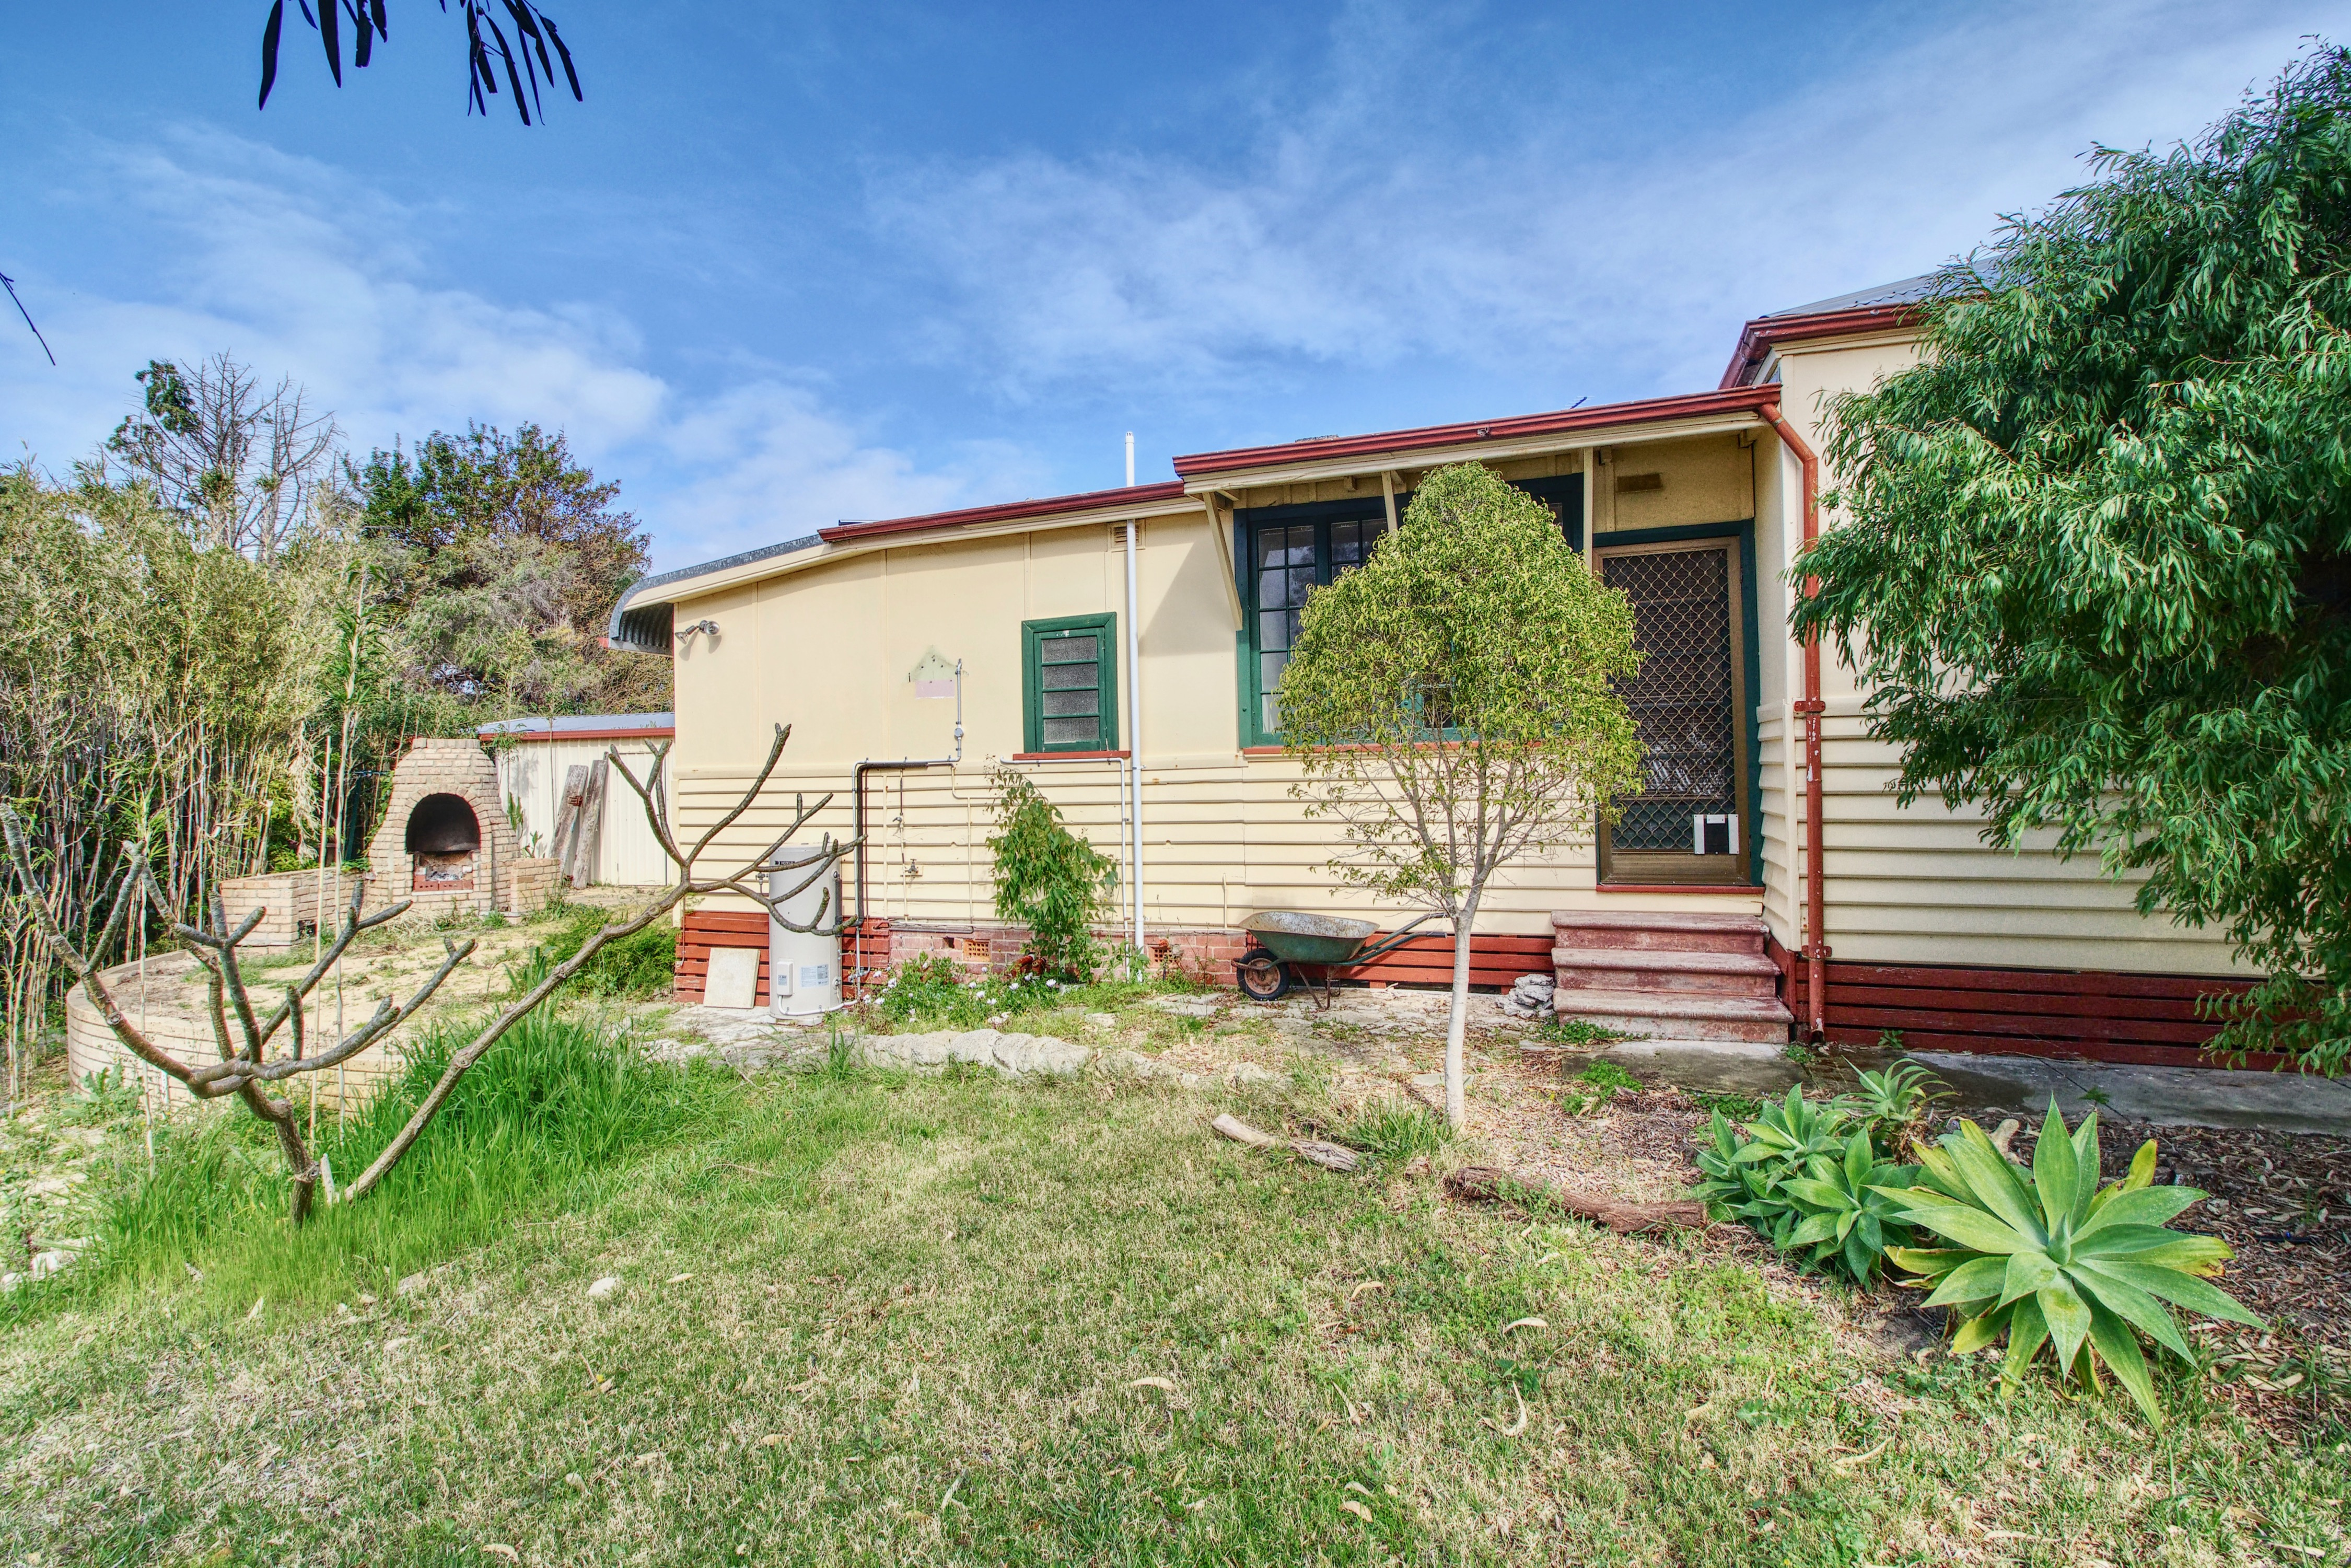 41 Coventry Road Shoalwater - House For Sale - 22374695 - ACTON Rockingham